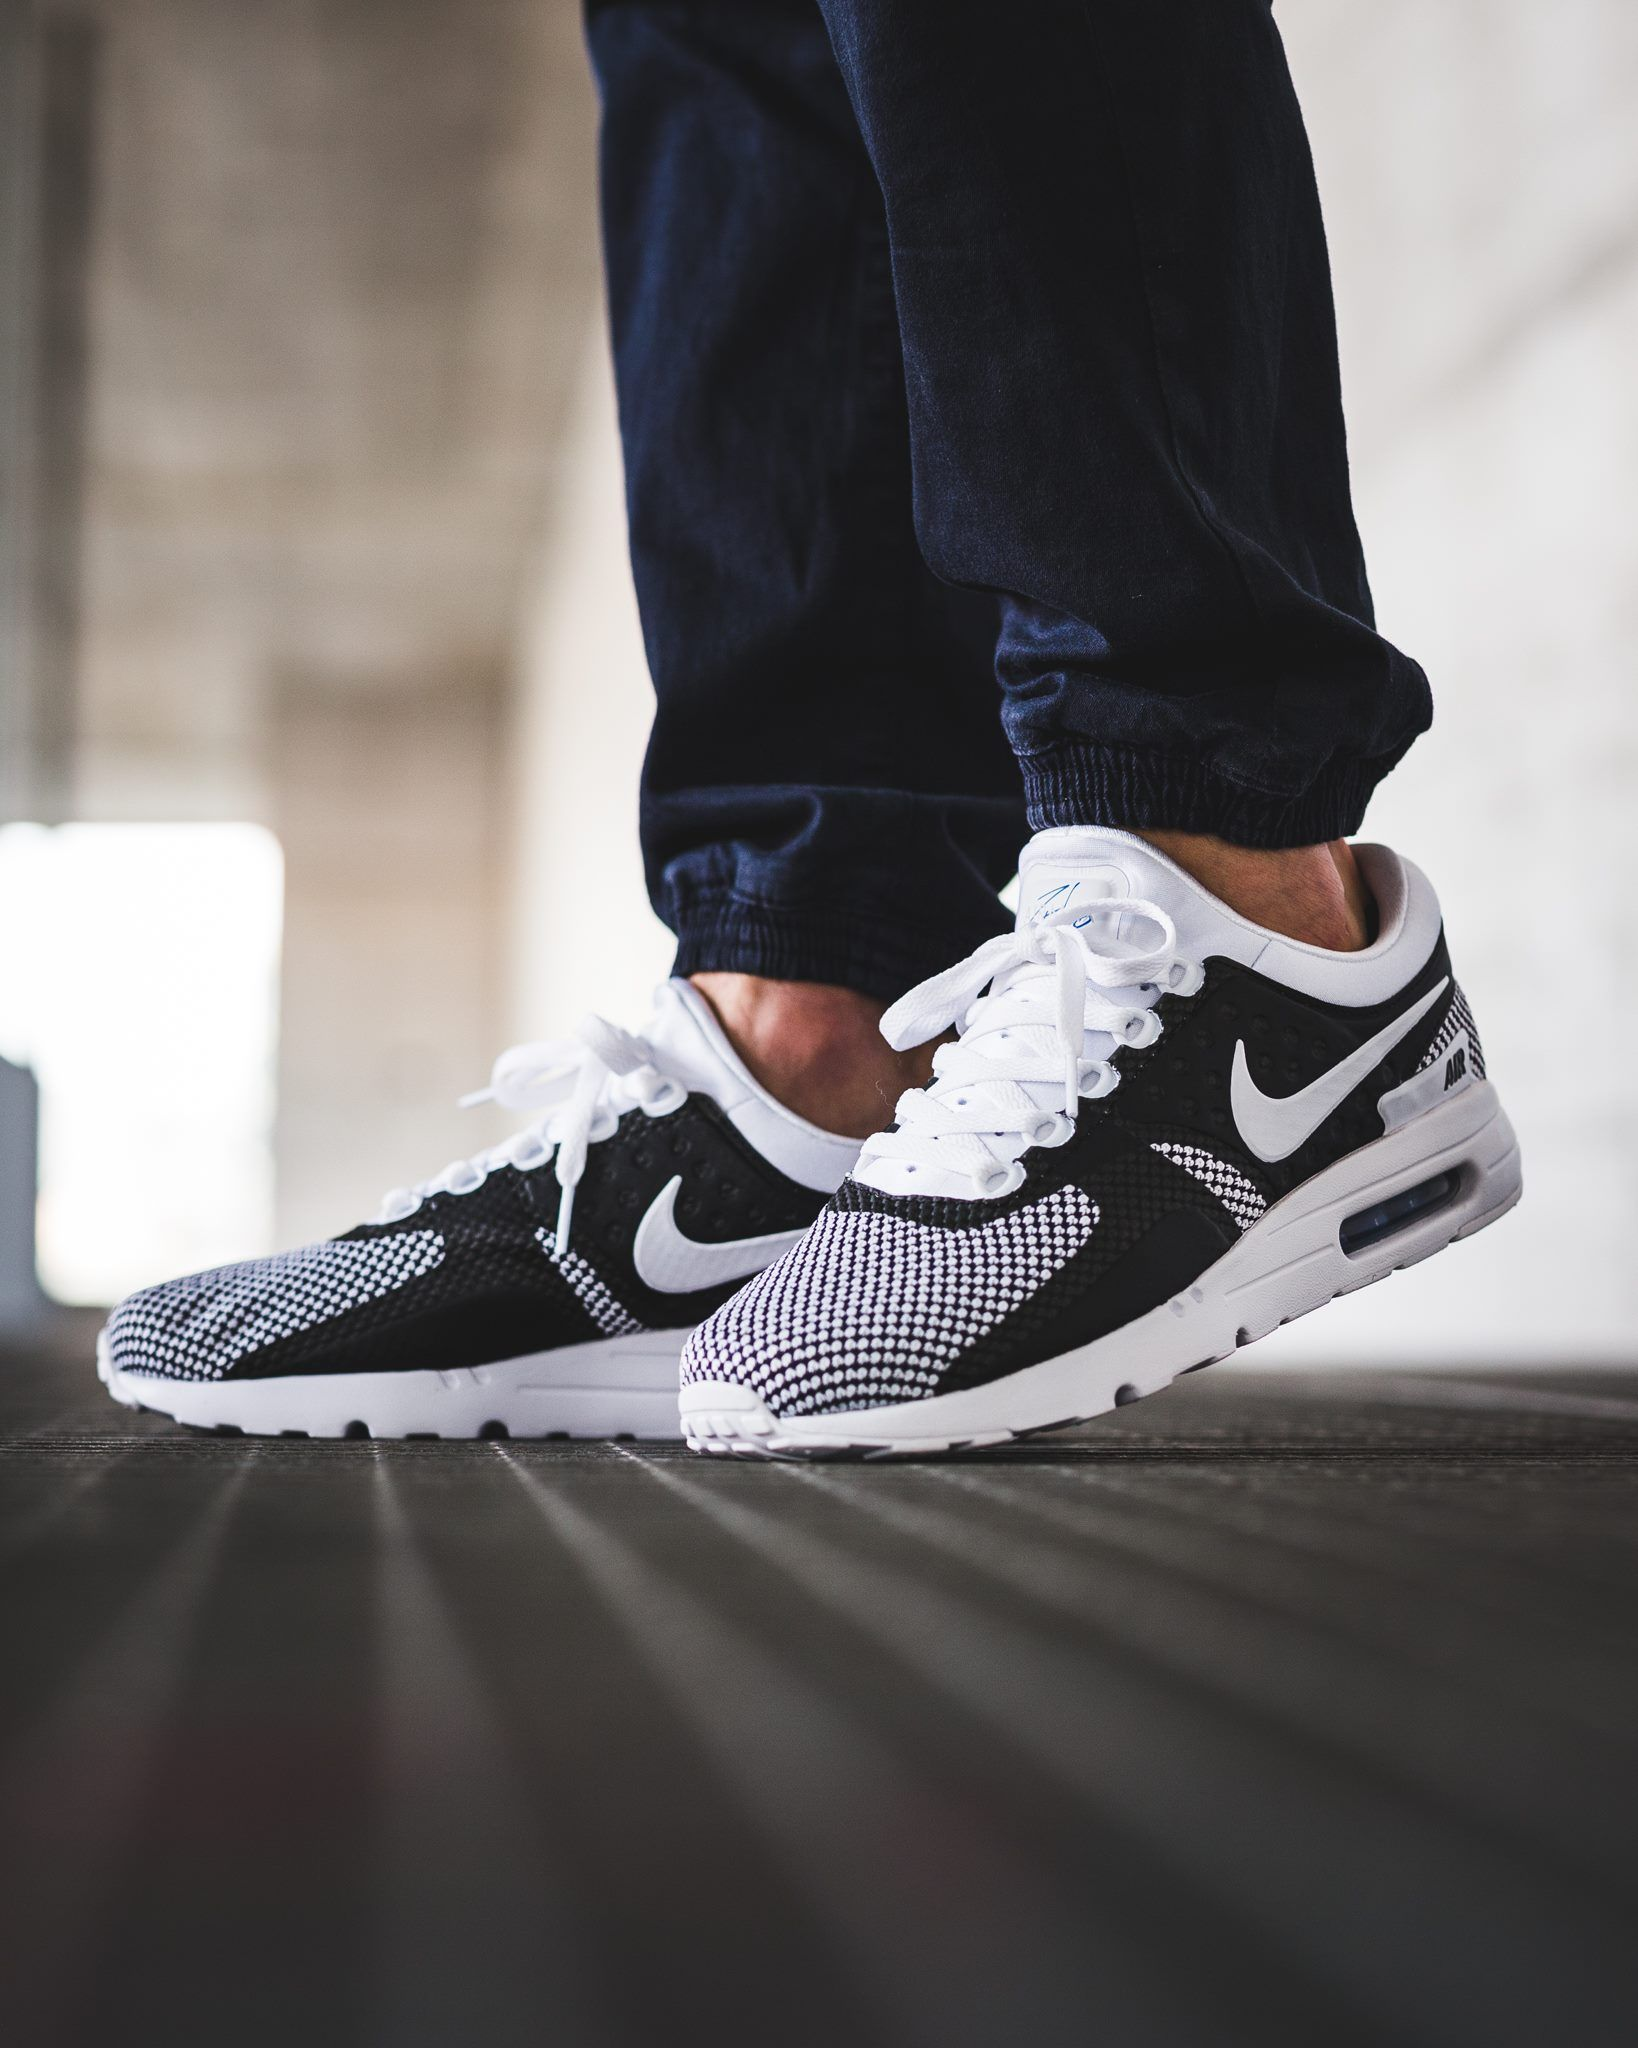 NIKE Air Max Zero Essential  White White-Obsidian-Soar  (876070-103) -  KICKS-DAILY.COM 40474086d